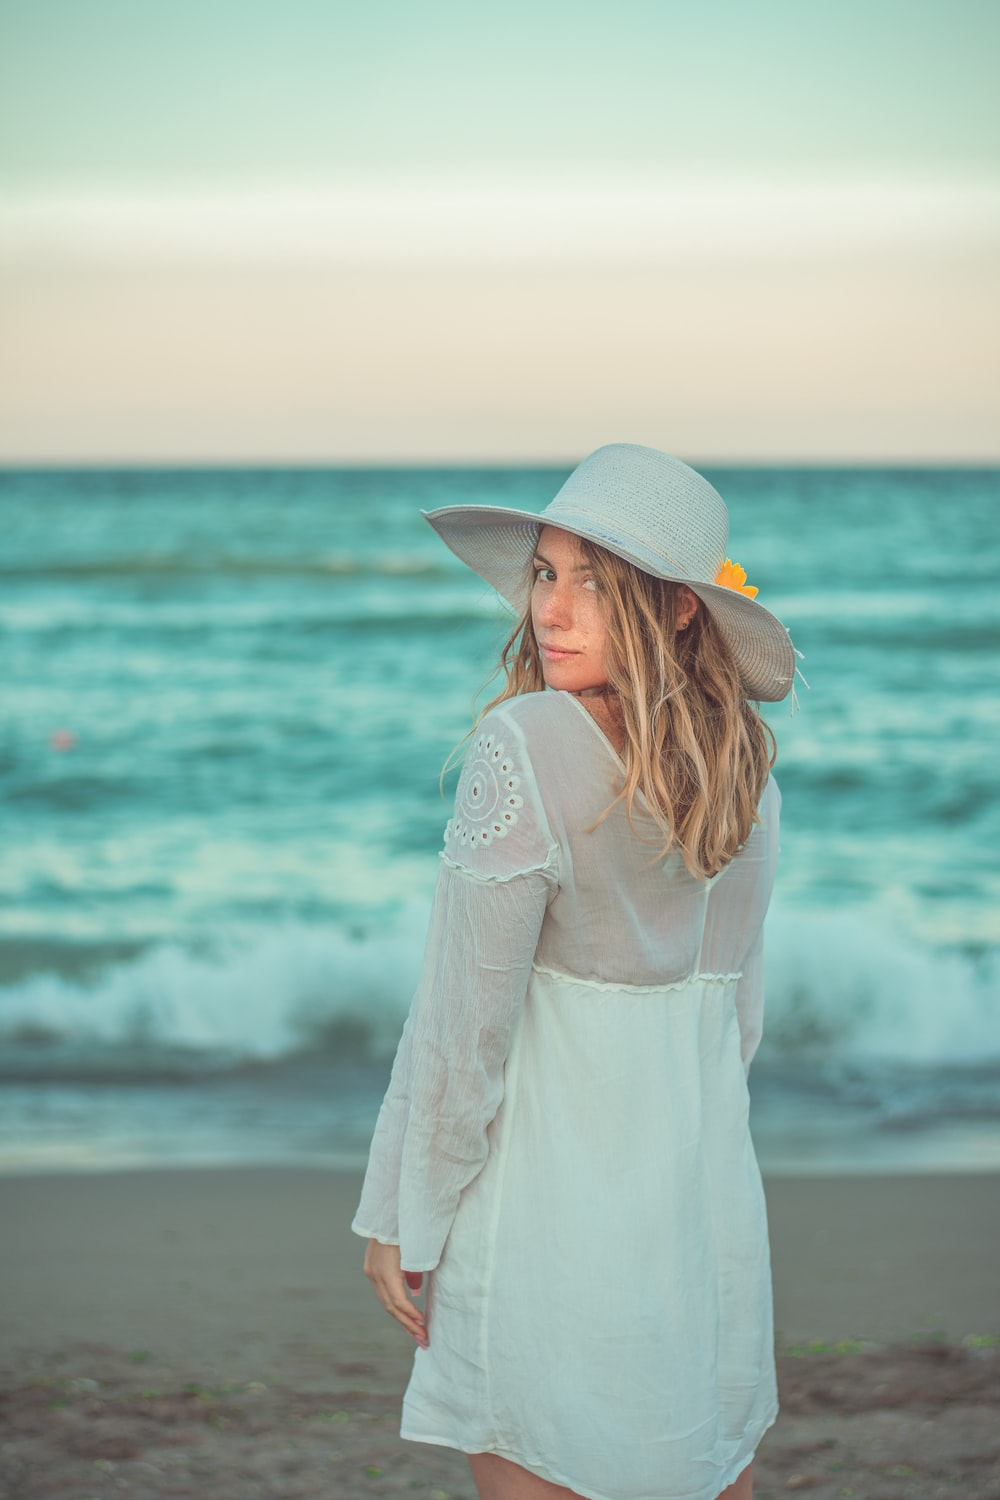 woman in white dress wearing brown hat standing on seashore during daytime